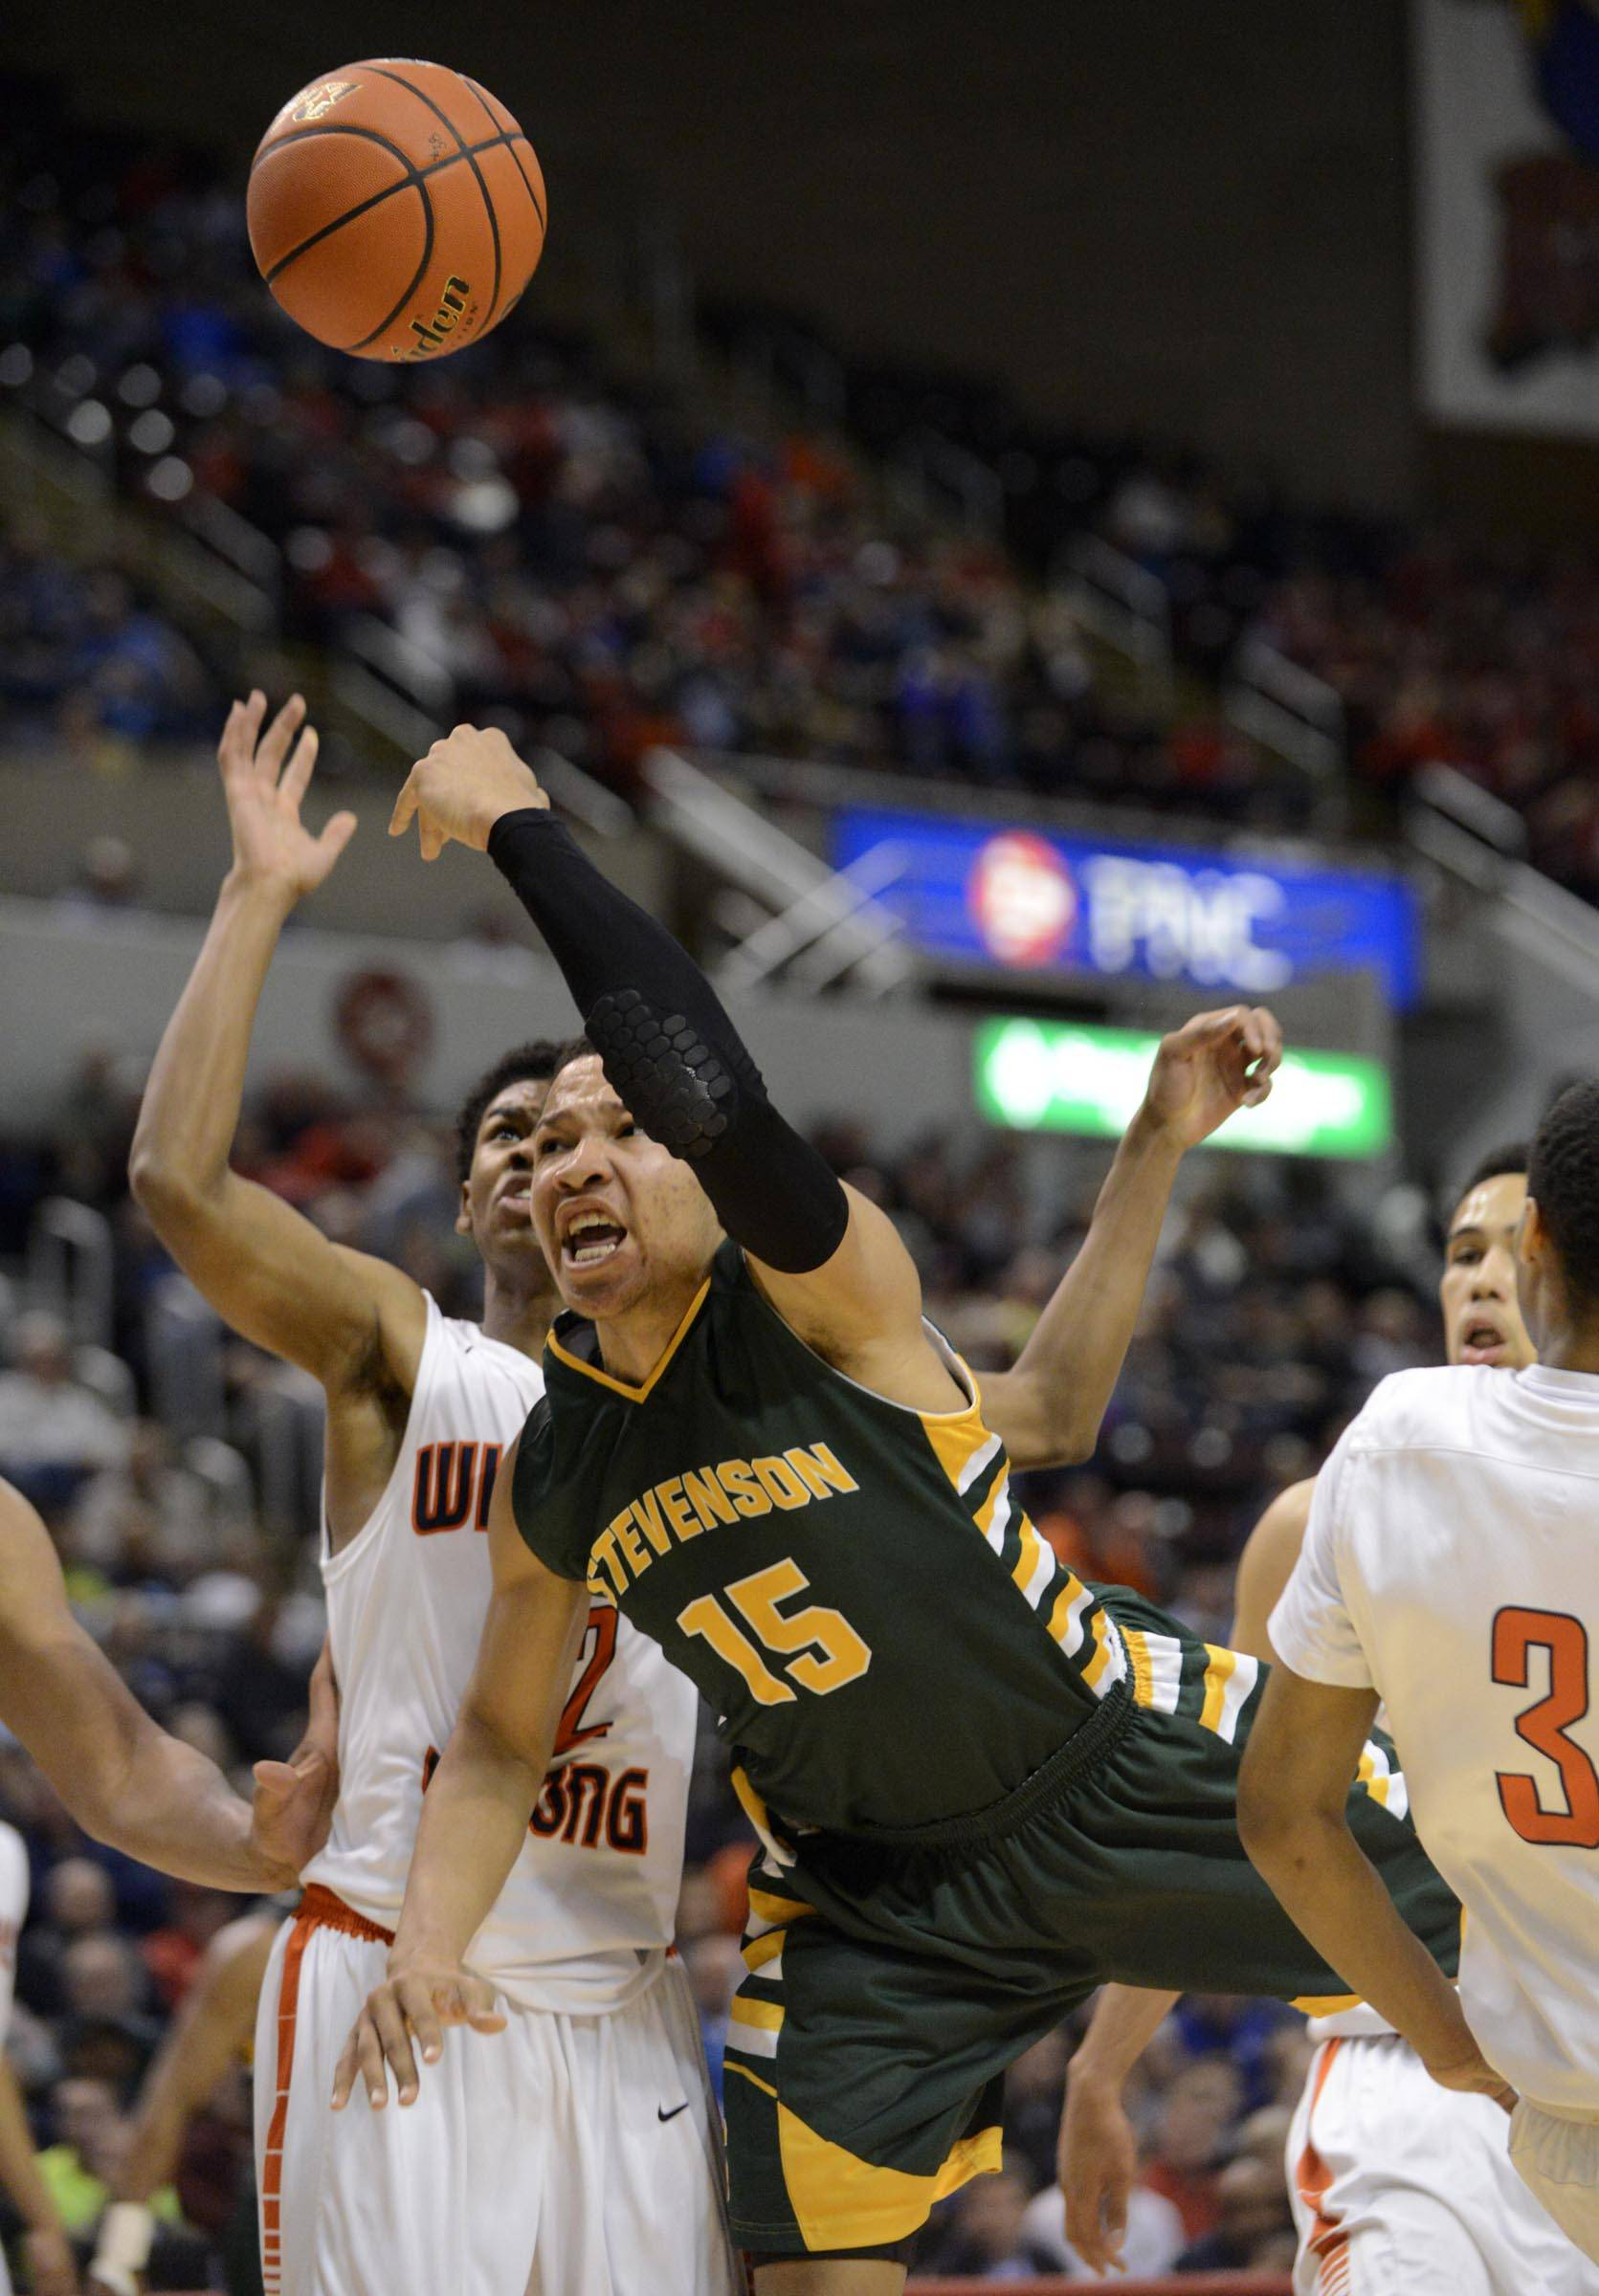 Stevenson's Jalen Brunson throws up the ball as he is fouled by Whitney Young's Erwin Henry.